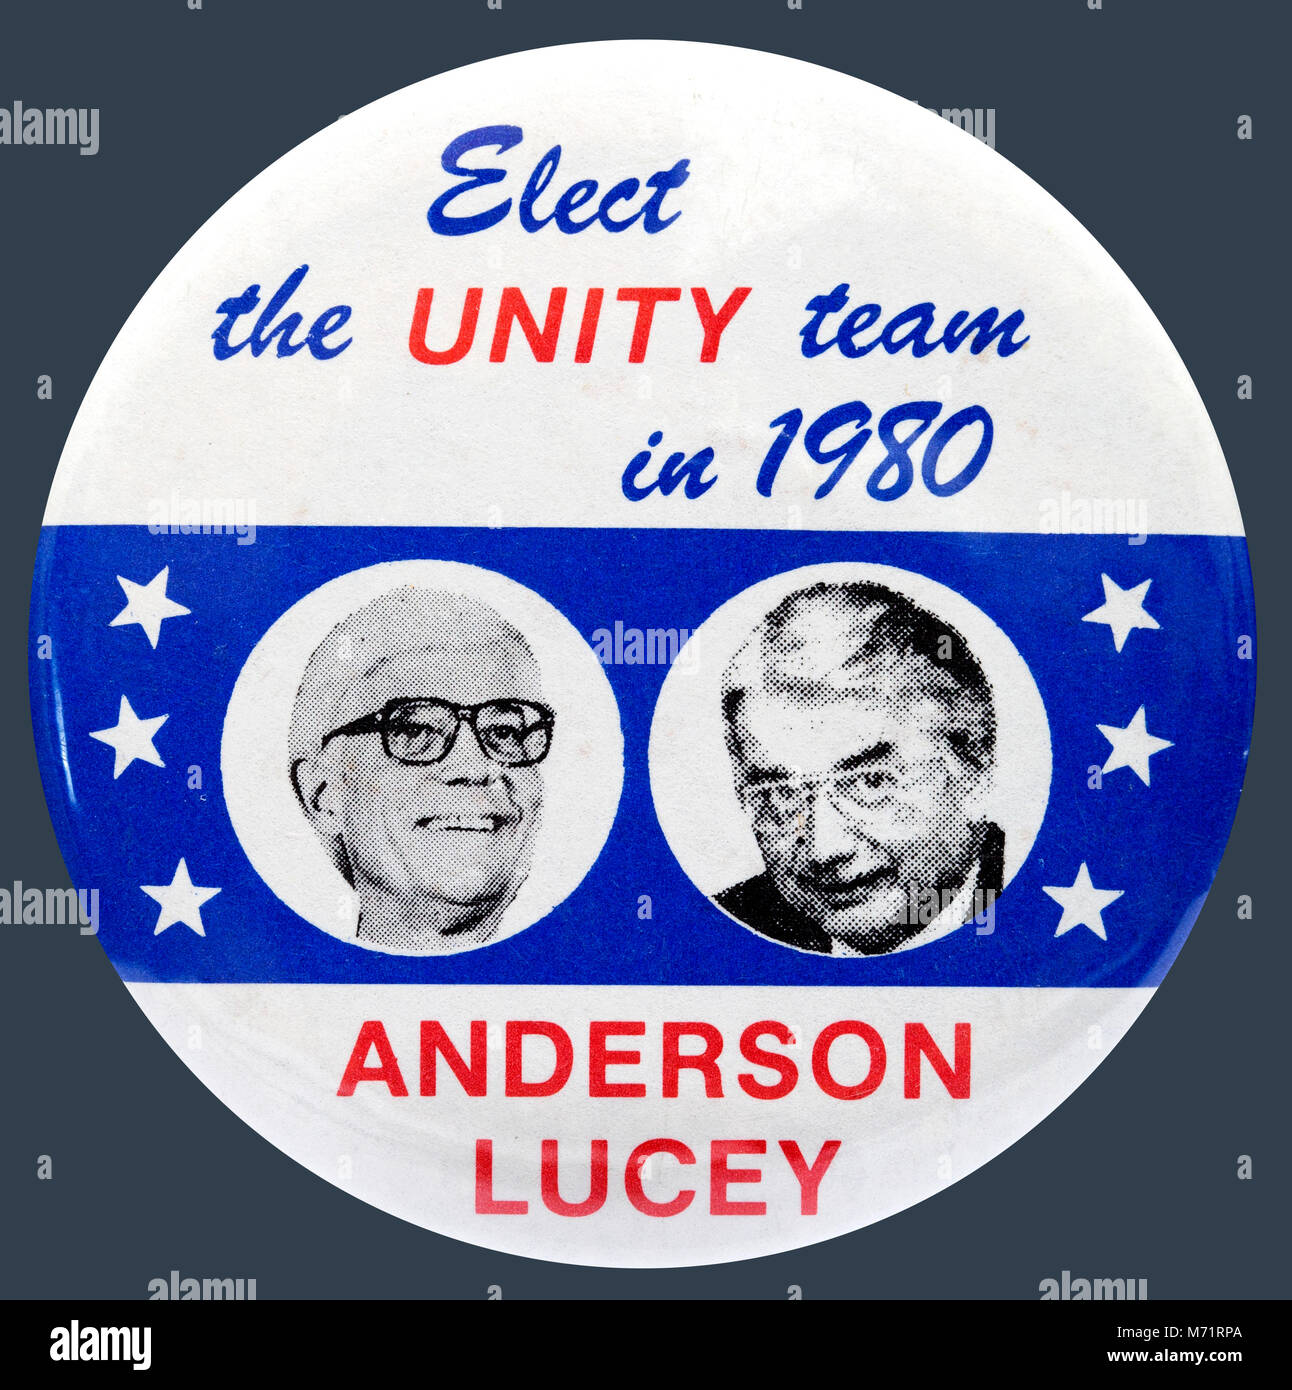 A 1980 United States presidential campaign button badge for the National Unity Party candidates John Anderson and - Stock Image